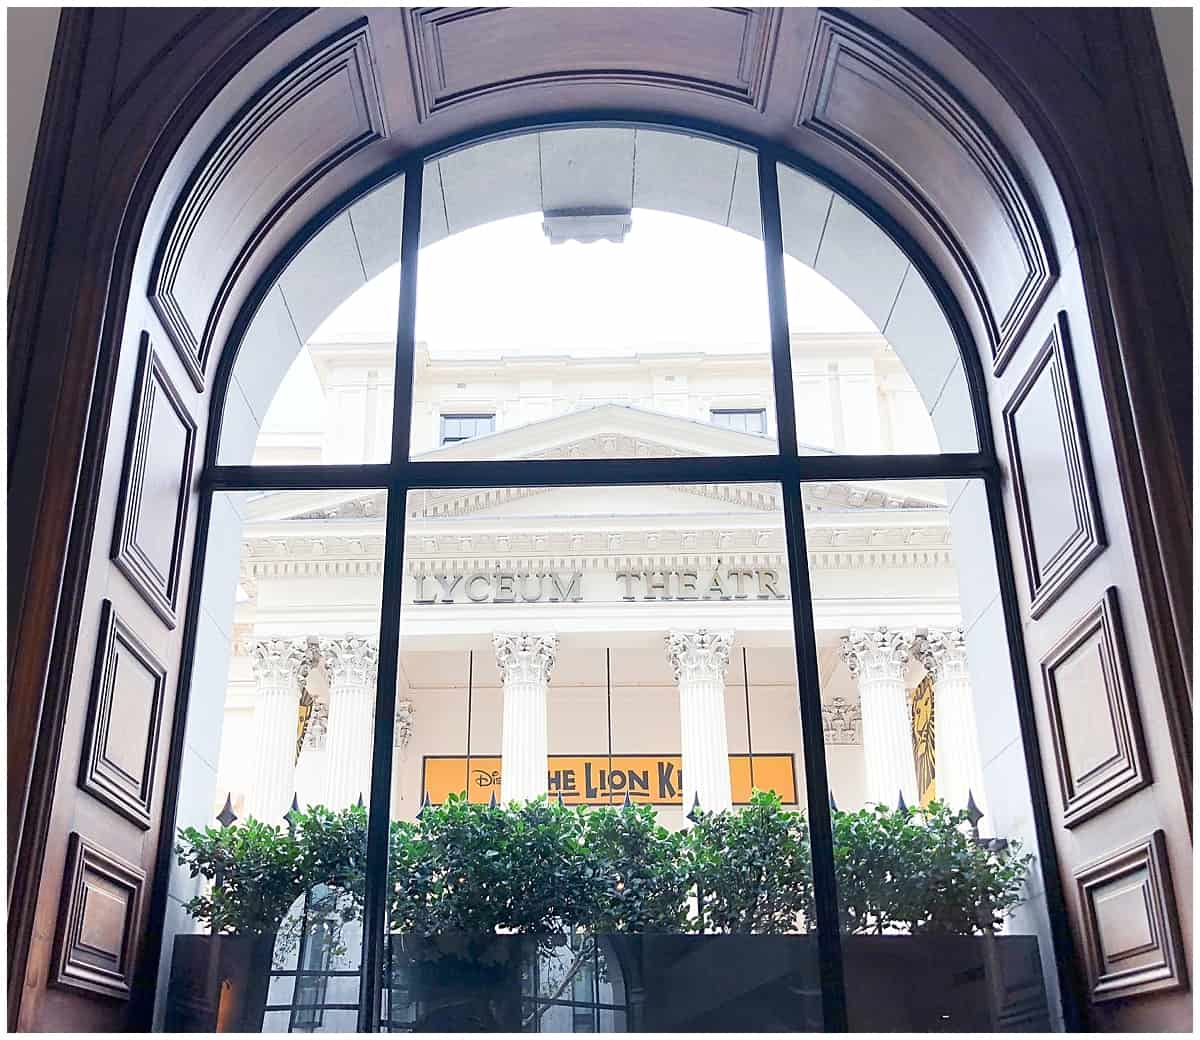 Covent Garden Hotel London West End One Aldwych Window View